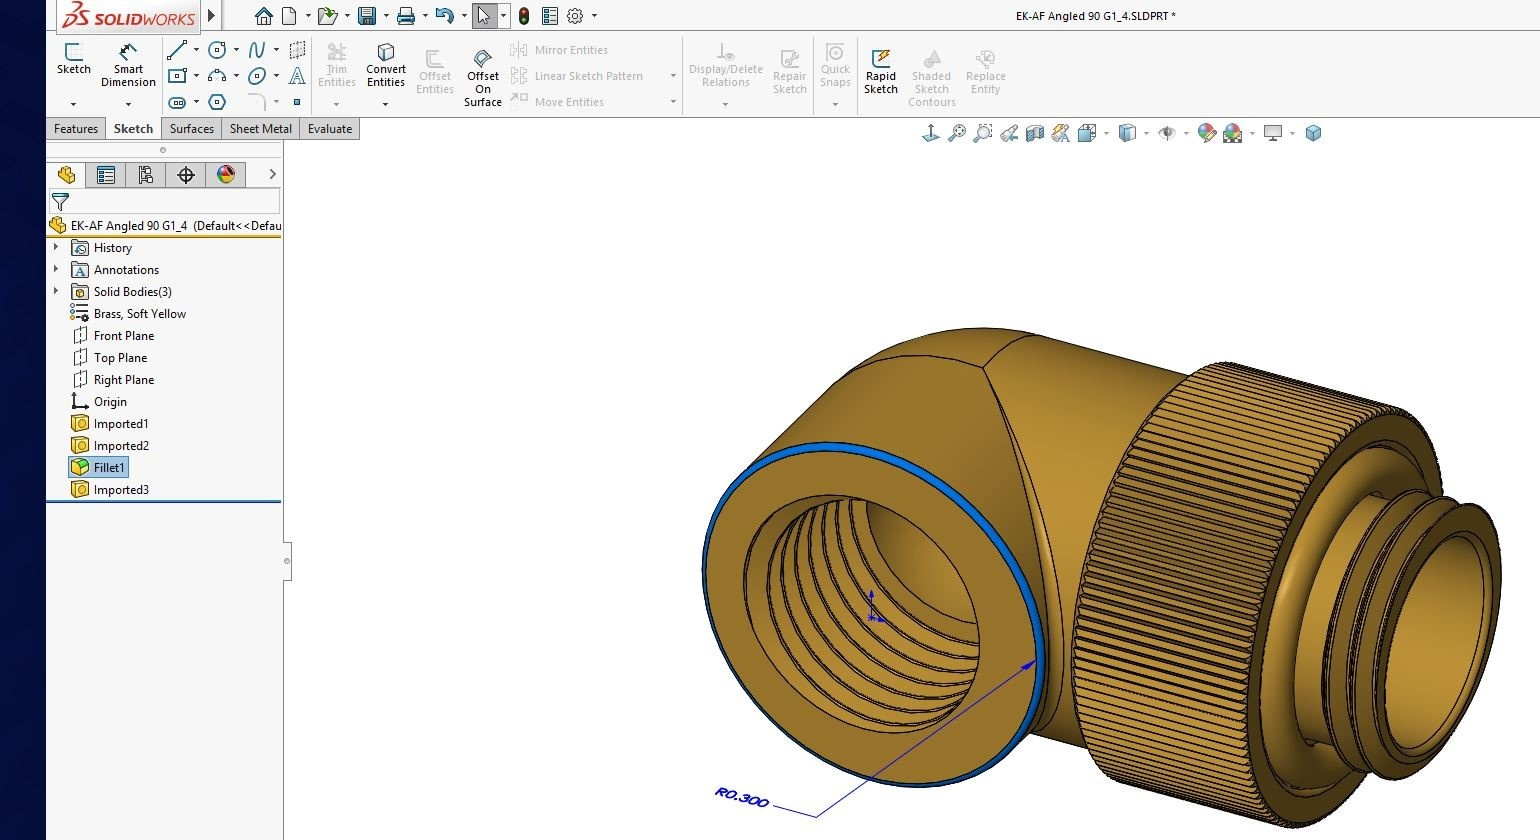 Migrating to SOLIDWORKS From Autodesk Inventor and Inventor